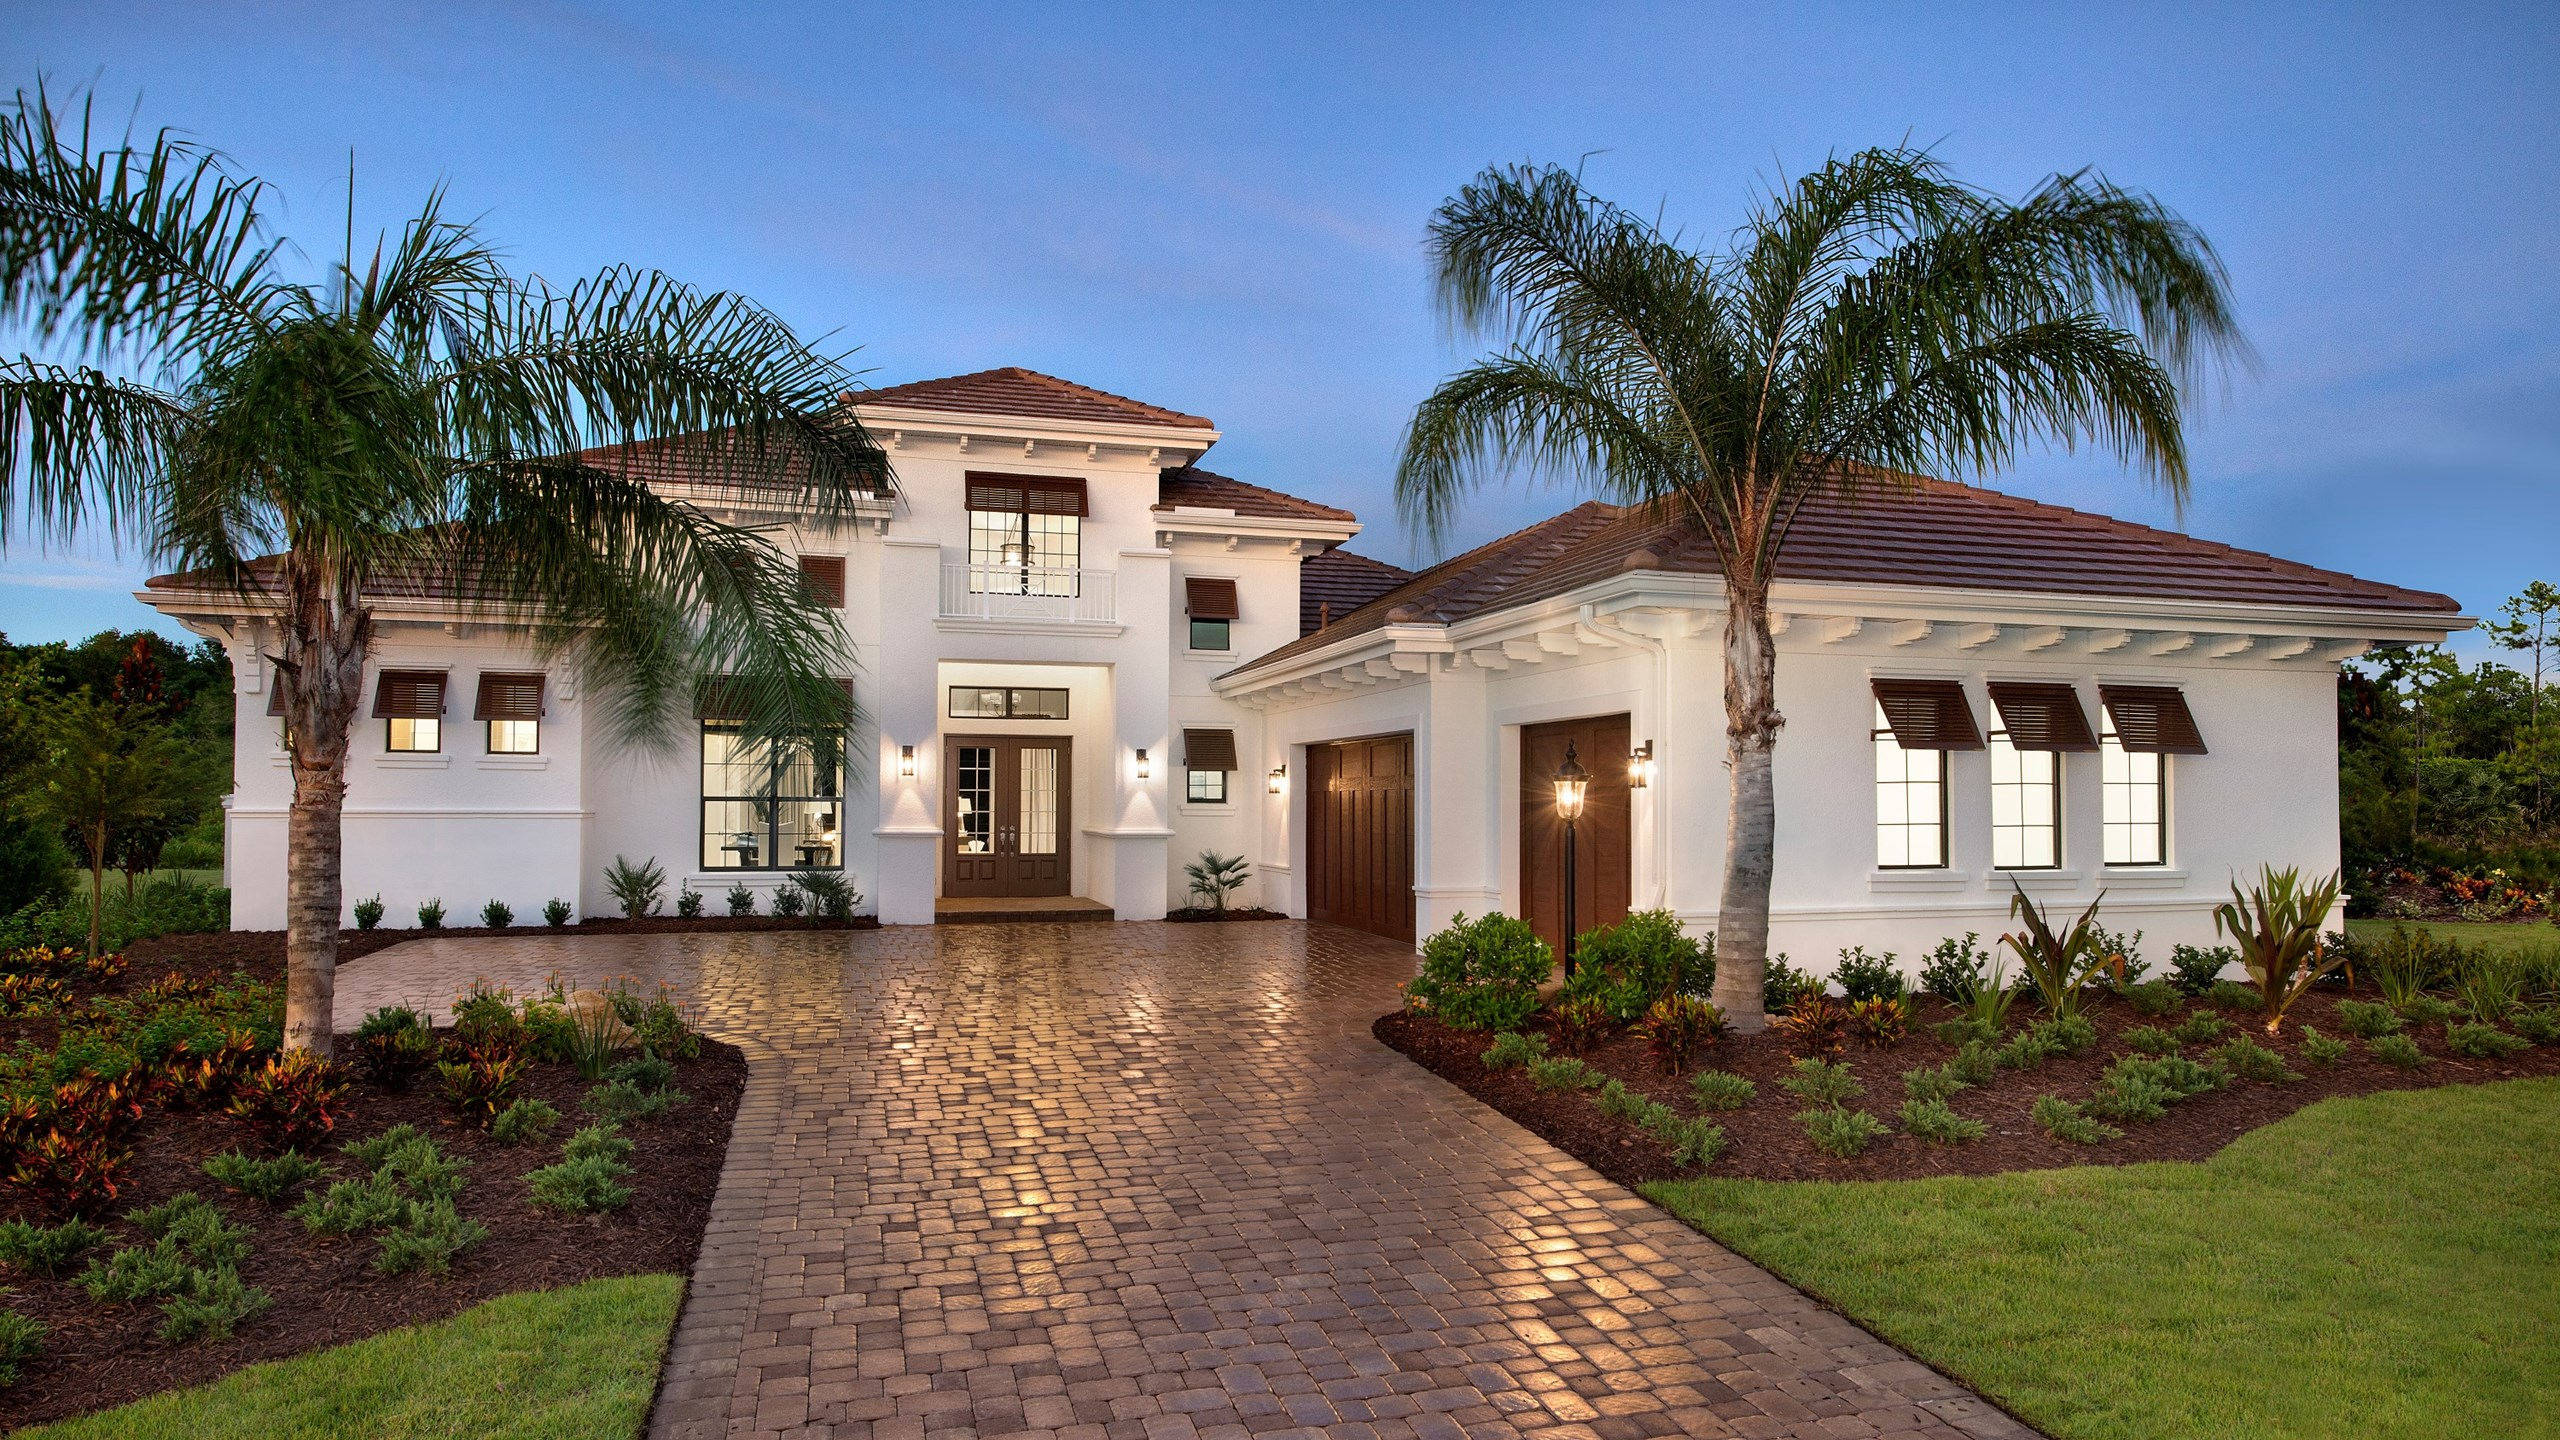 You are currently viewing WCI Homes Tampa Florida Real Estate | Ruskin Florida Realtor | Palmetto New Homes for Sale | Wesley Chapel Florida